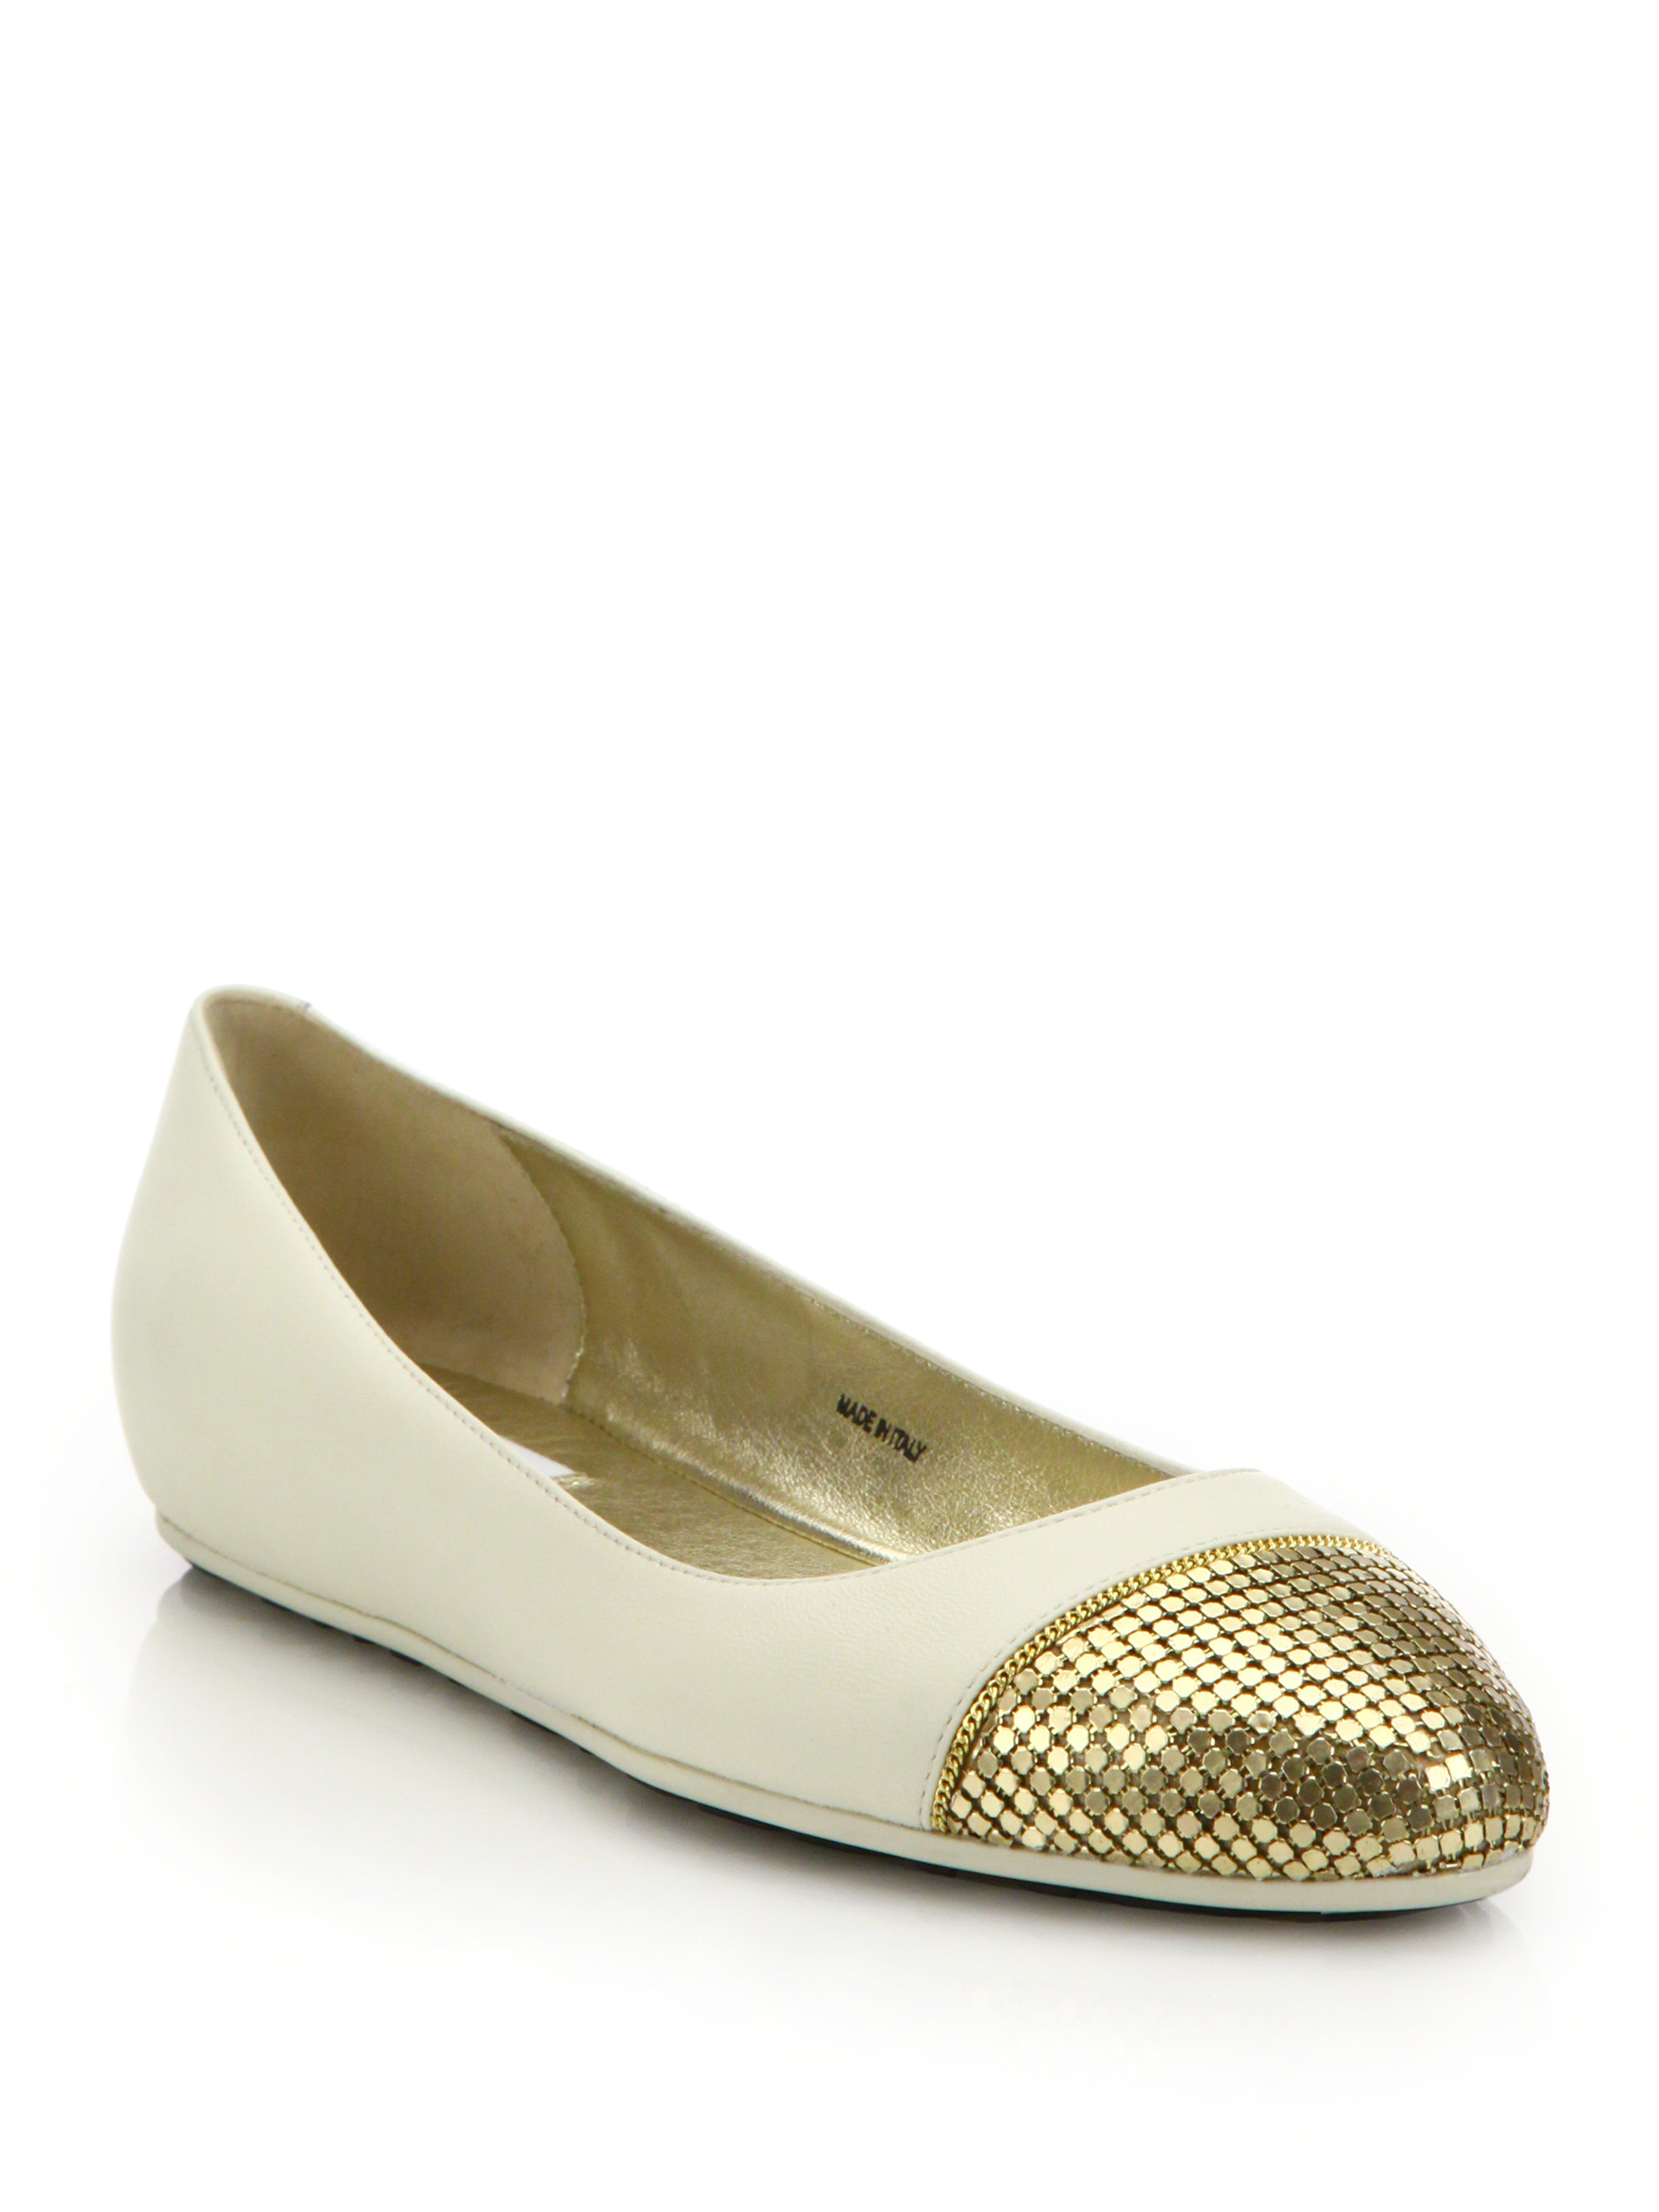 Pointe Shoes Flats 28 Images Christian Louboutin